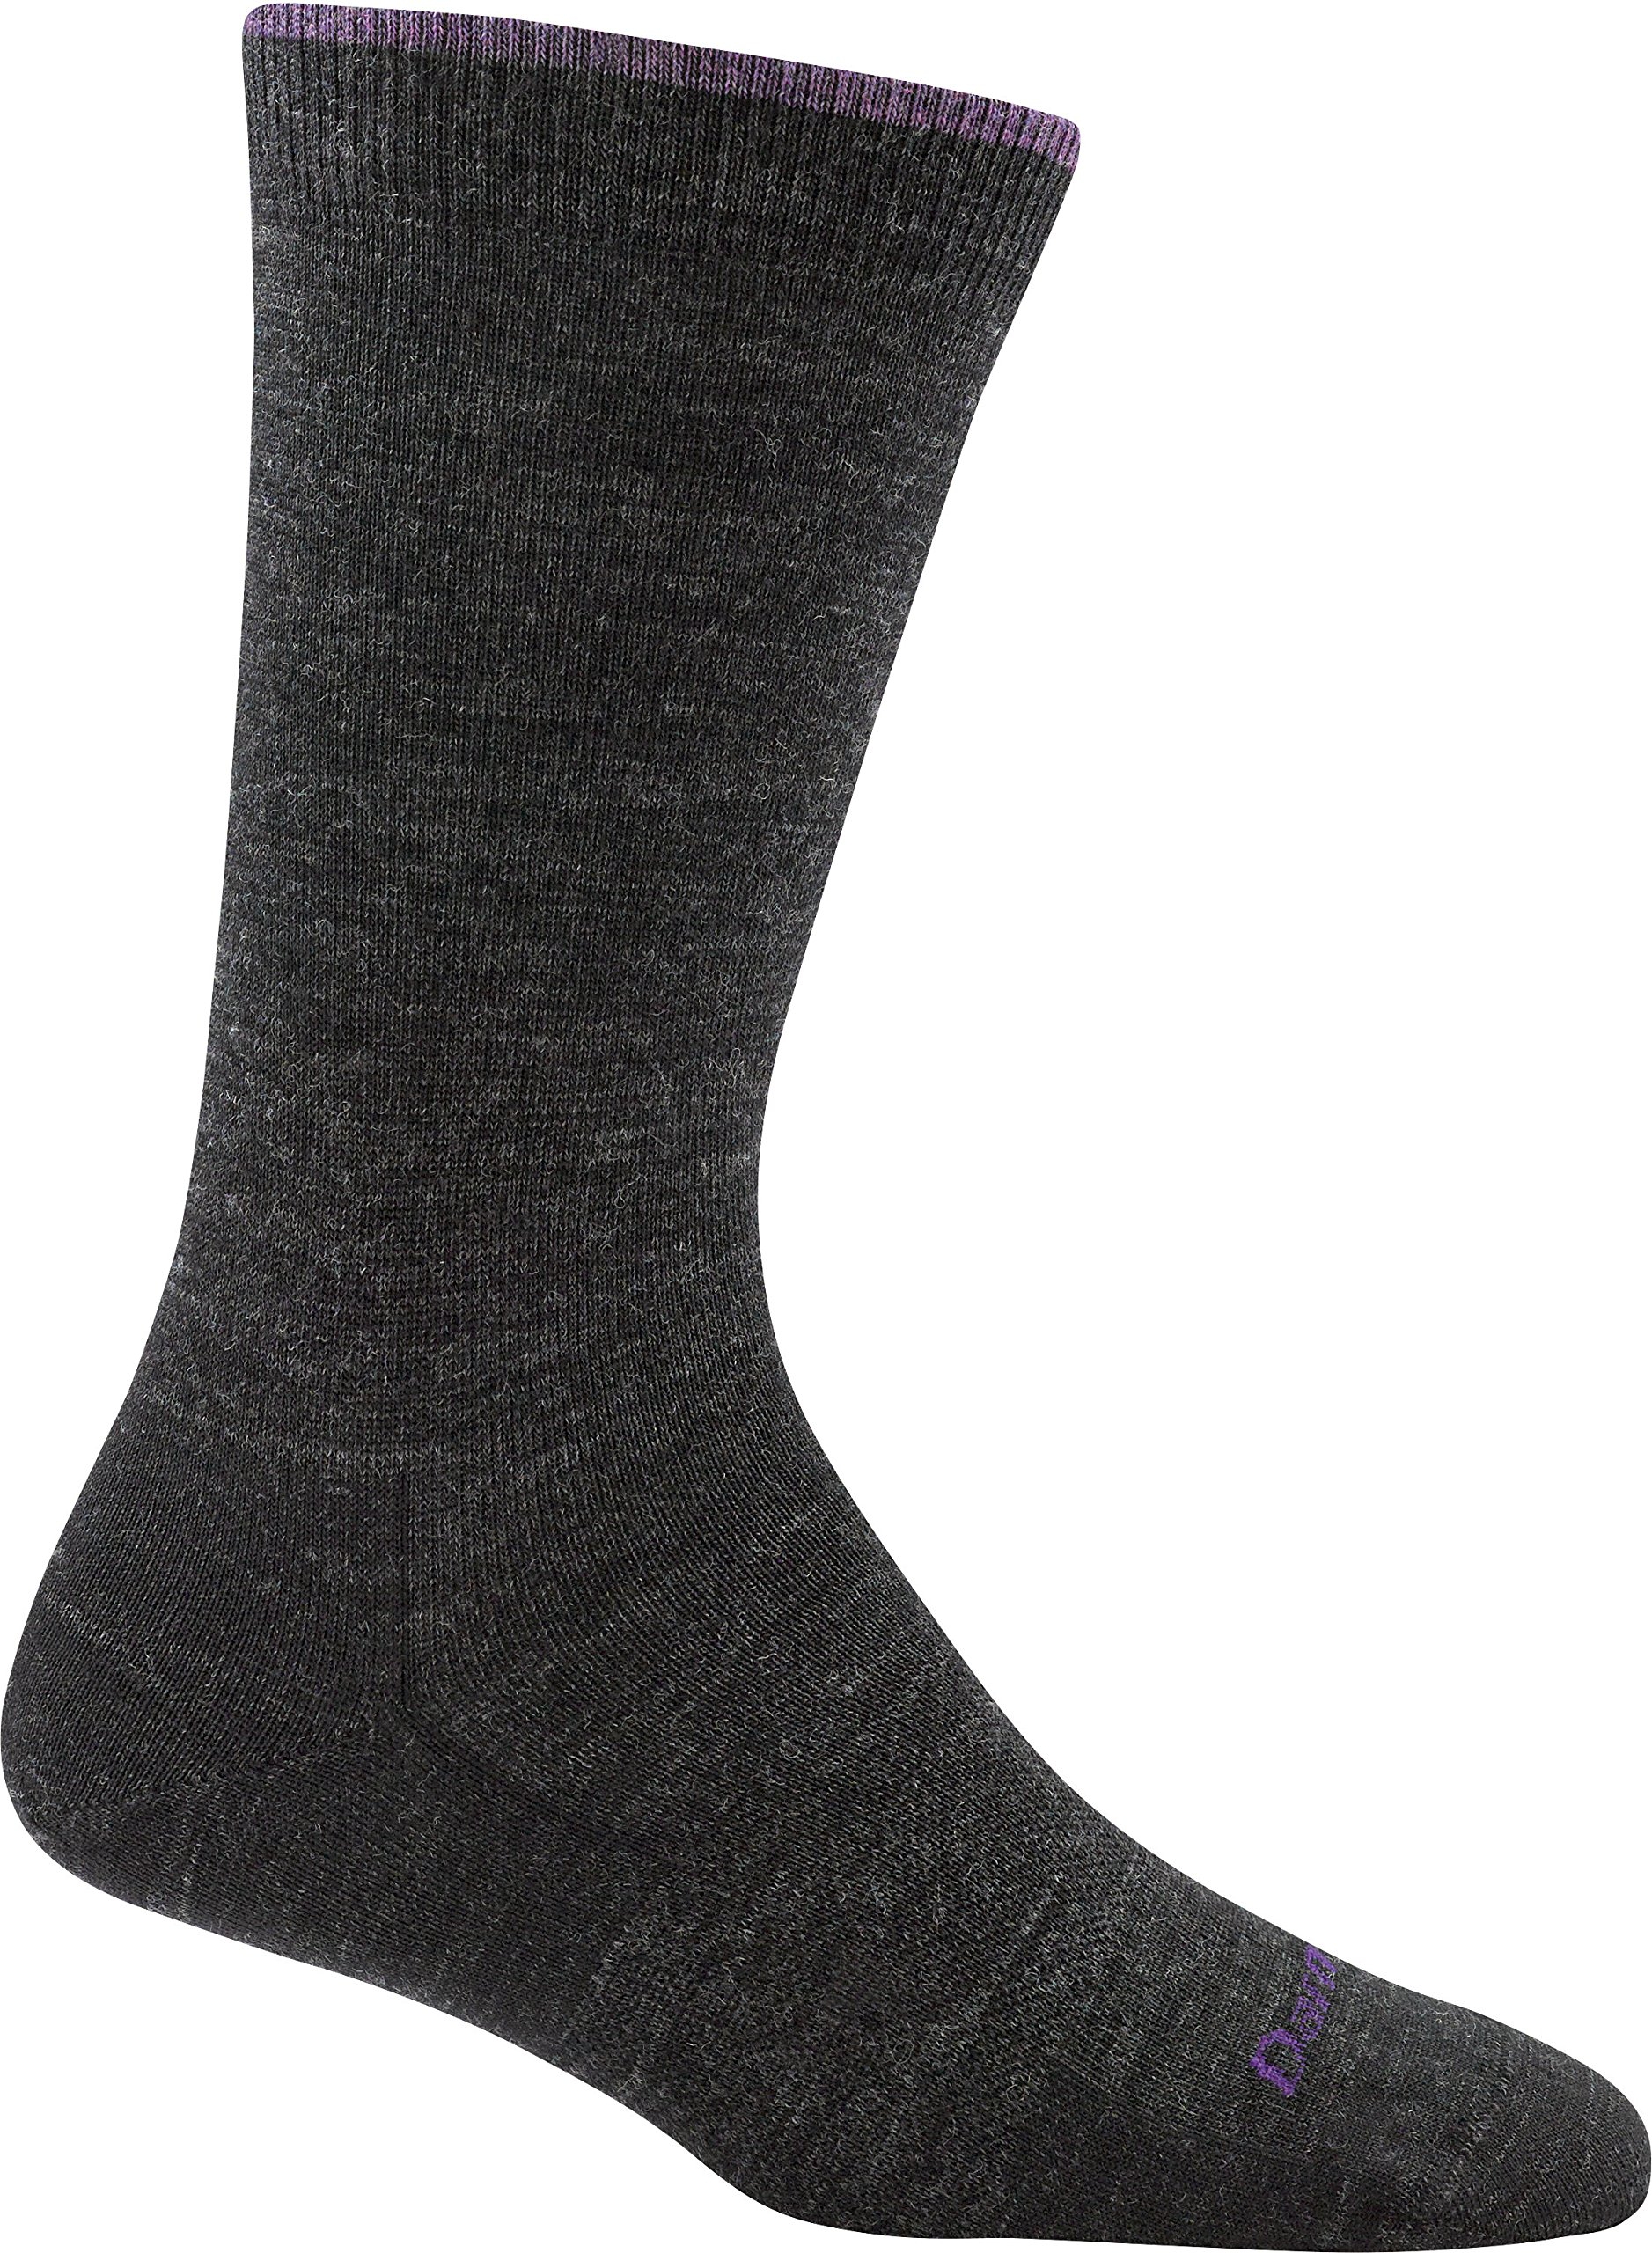 Darn Tough Women's Merino Wool Solid Basic Crew Light Socks, Charcoal, Large - 6 Pack